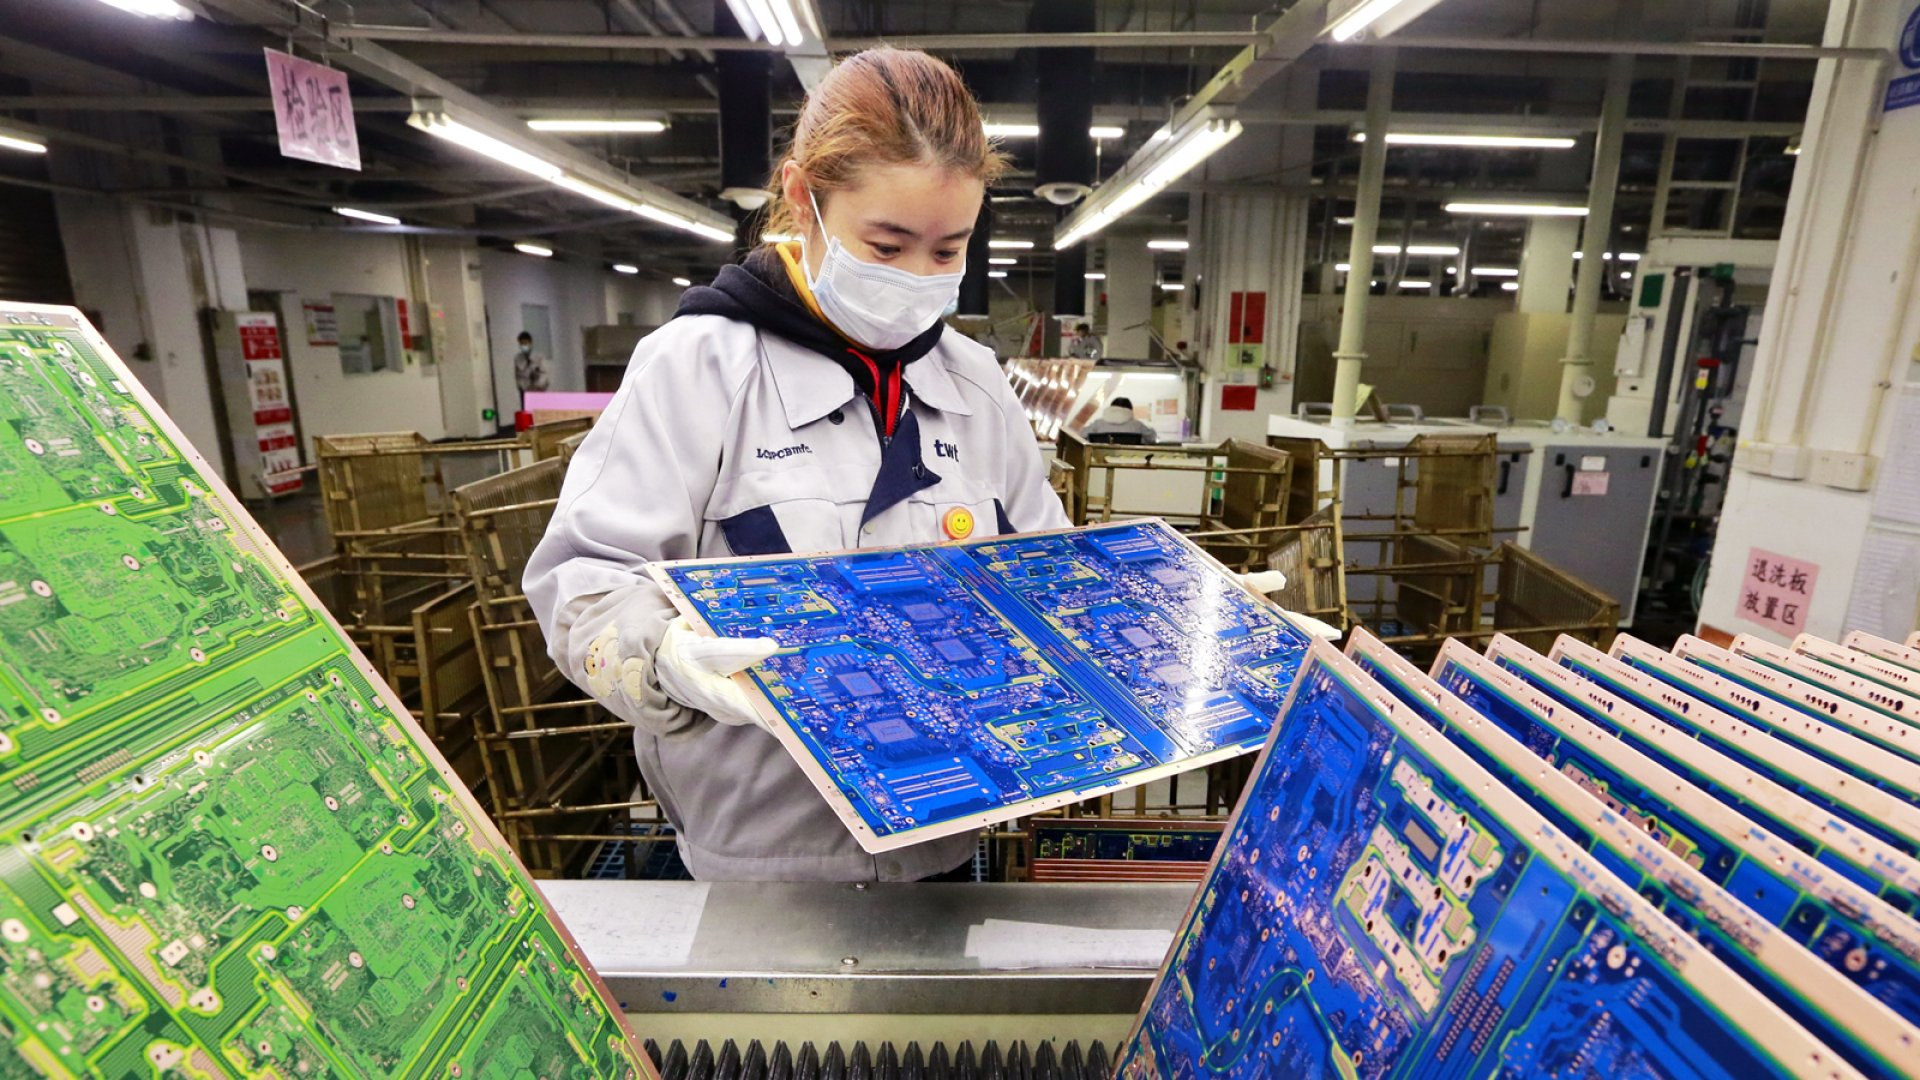 On February 15, 2020, a woman works in a factory of printed circuit boards, a subsidiary of Taiwan PCB Techvest, in Suining, a city in southwest China's Sichuan province.